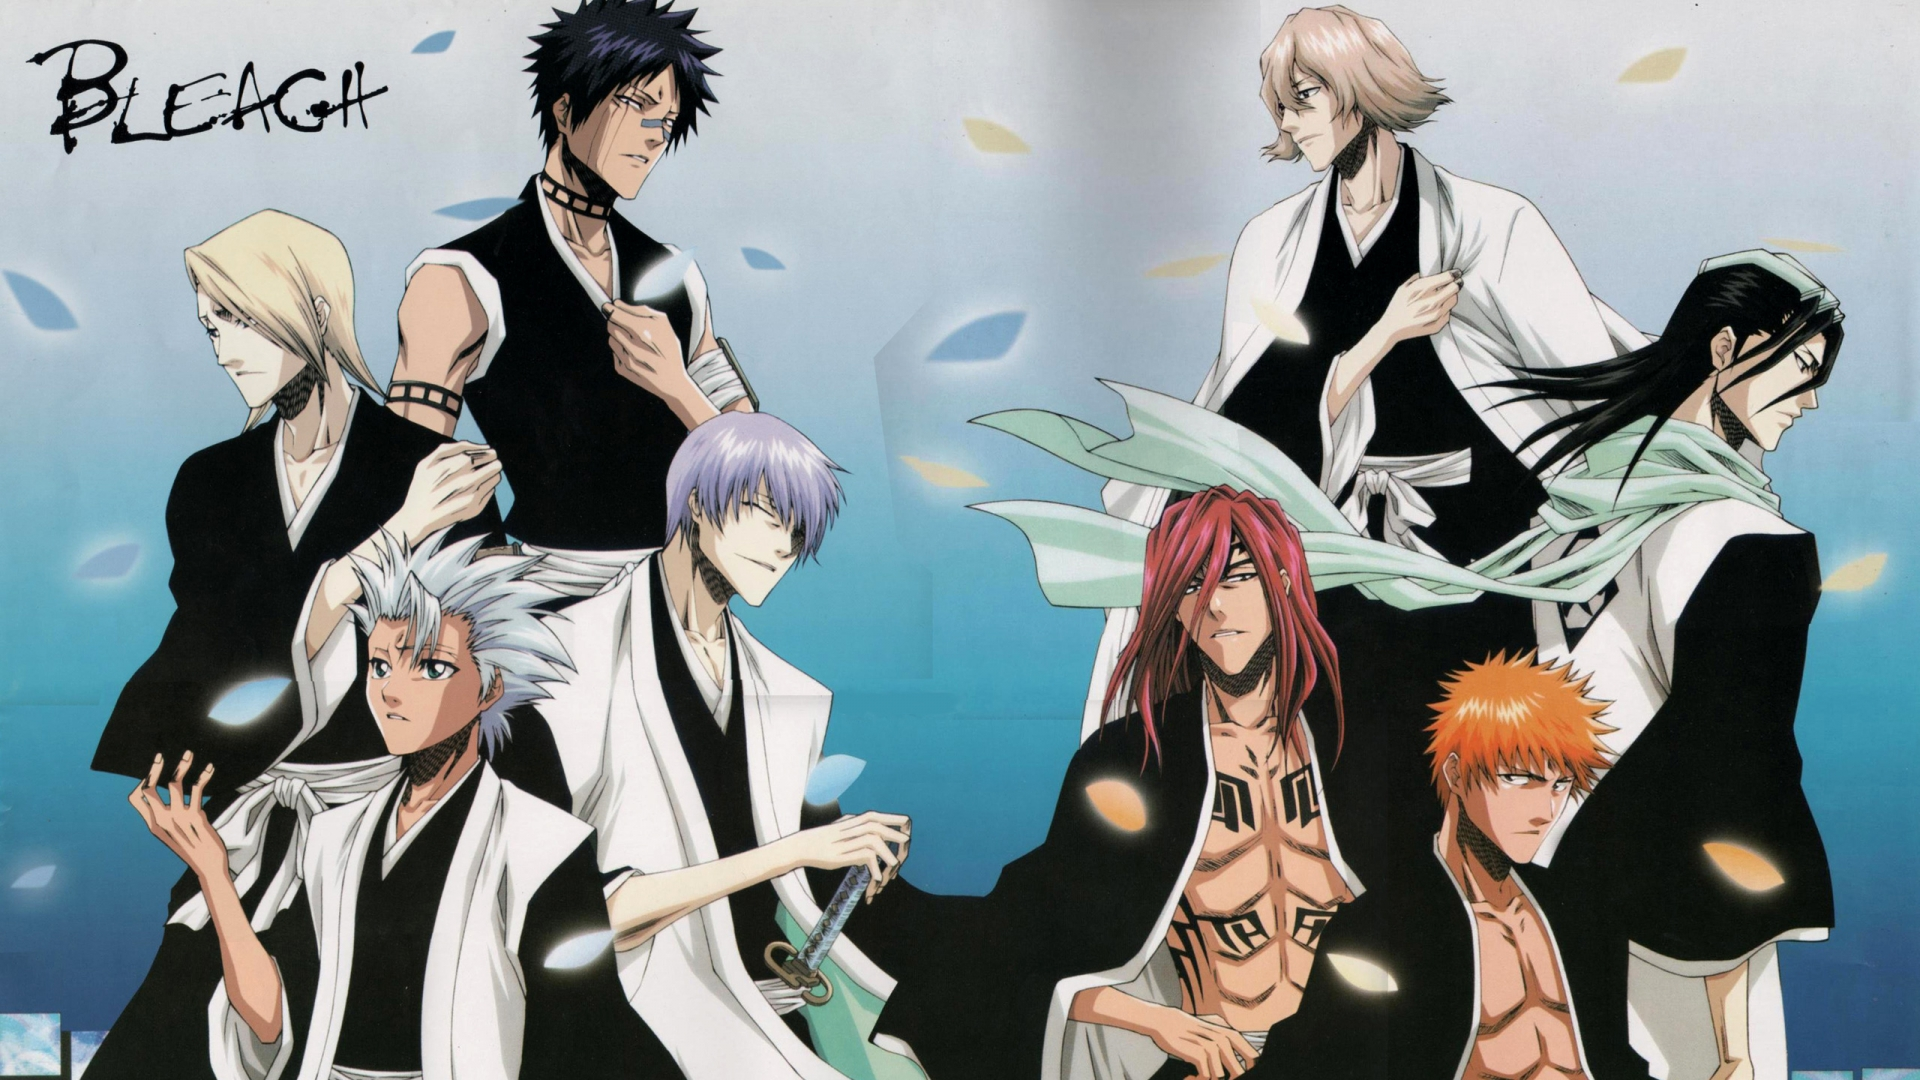 bleach characters wallpaper - sf wallpaper